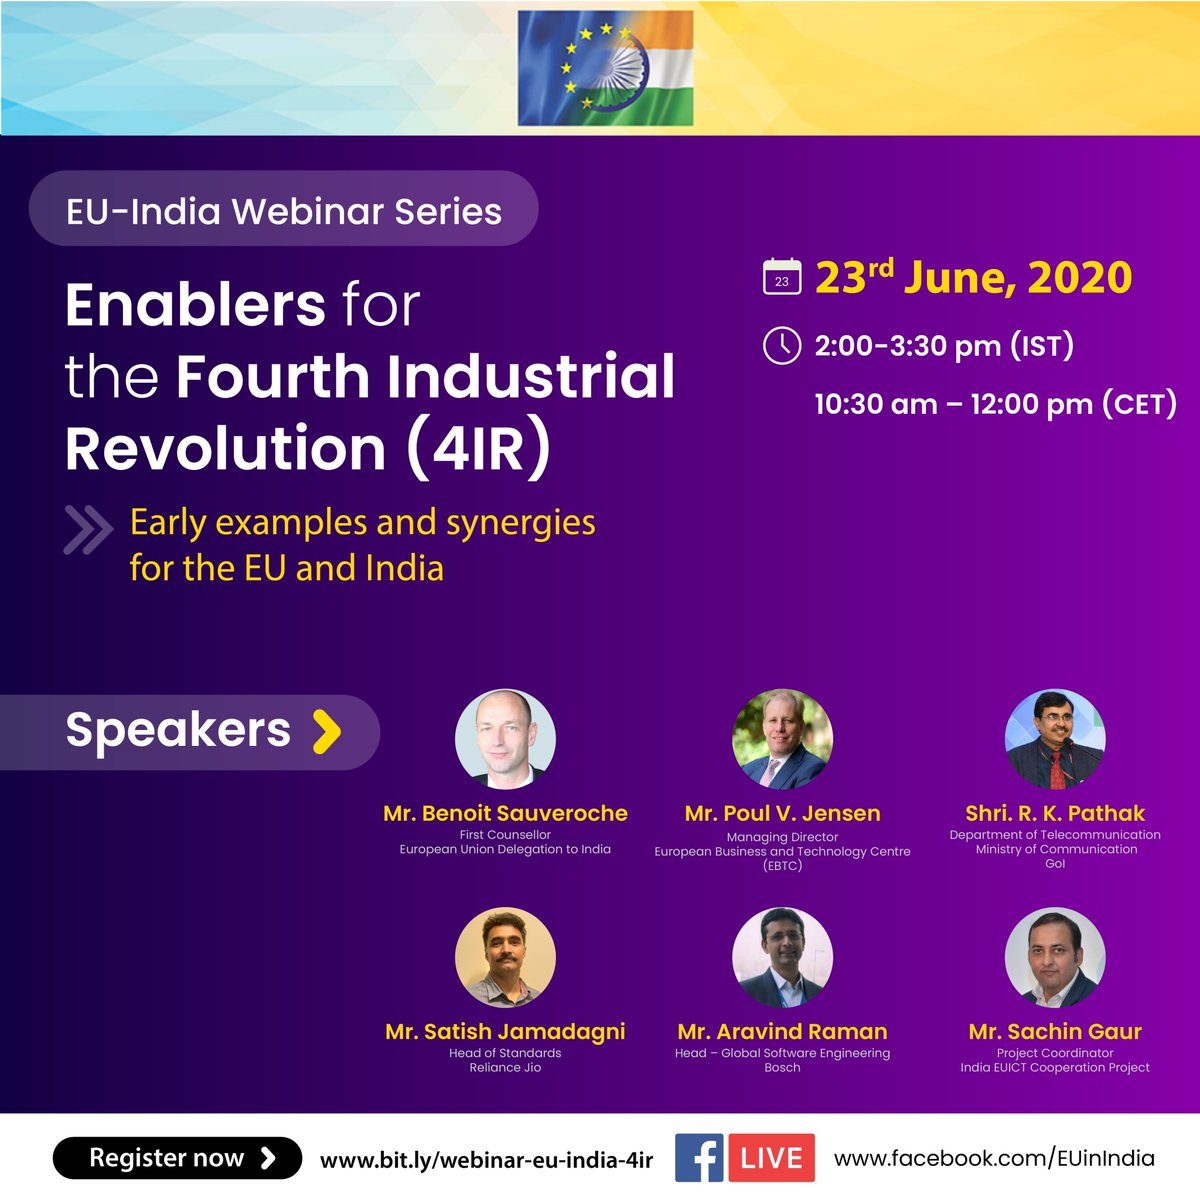 Thank you for making our second ICT session under the EU-India Webinar Series a truly engaging discussion. @EU_in_India @EBTC_EU @sachgaur  #4IR #EUIndiaEkSaath 🇪🇺🇮🇳 #AI #5G